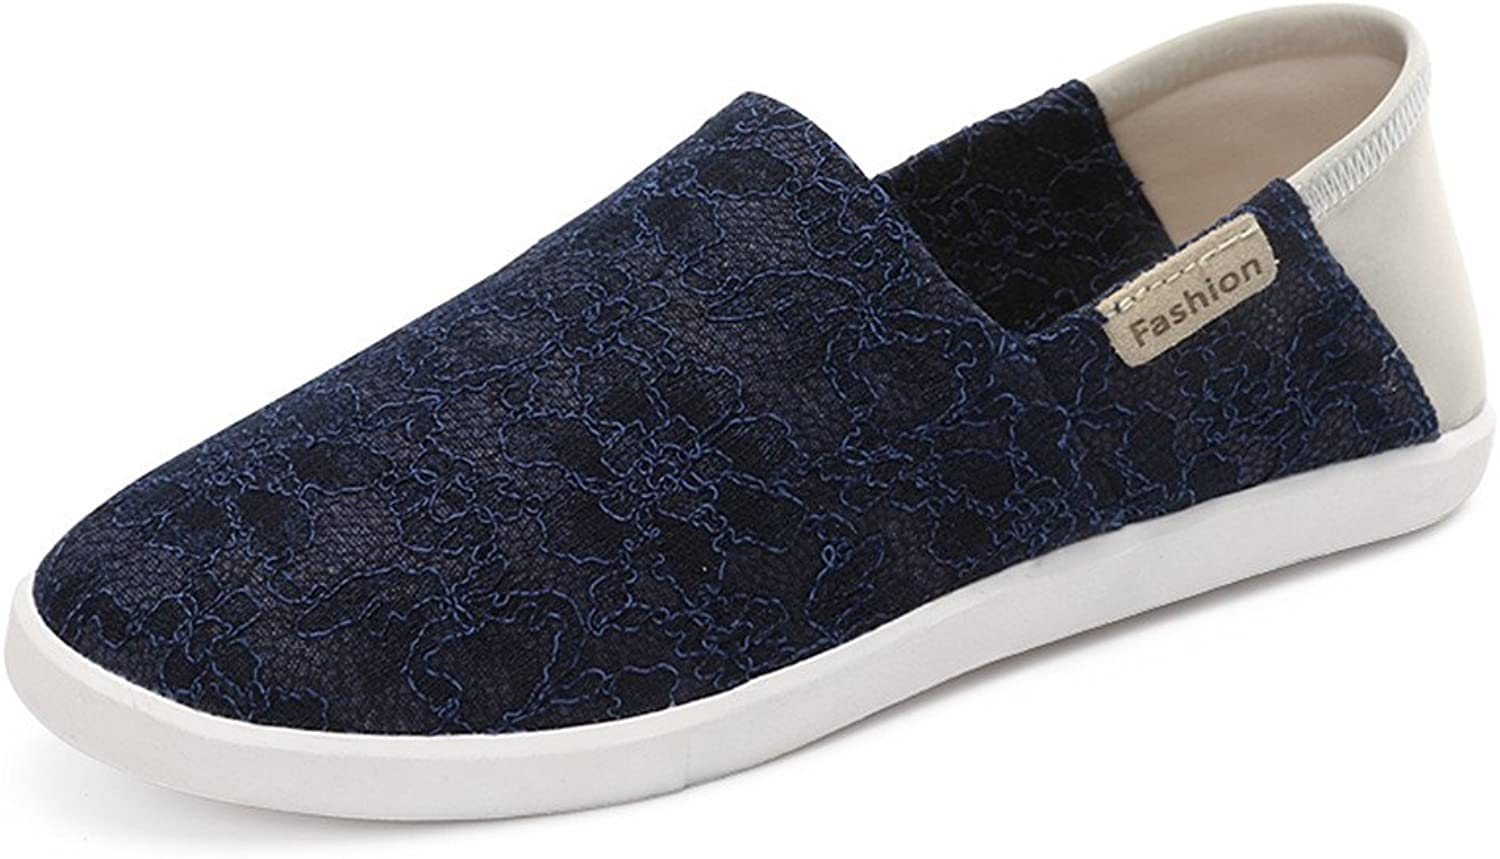 XDX Taste Of Life Fashion Women's Lace Mesh Slip On Sneakers shoes